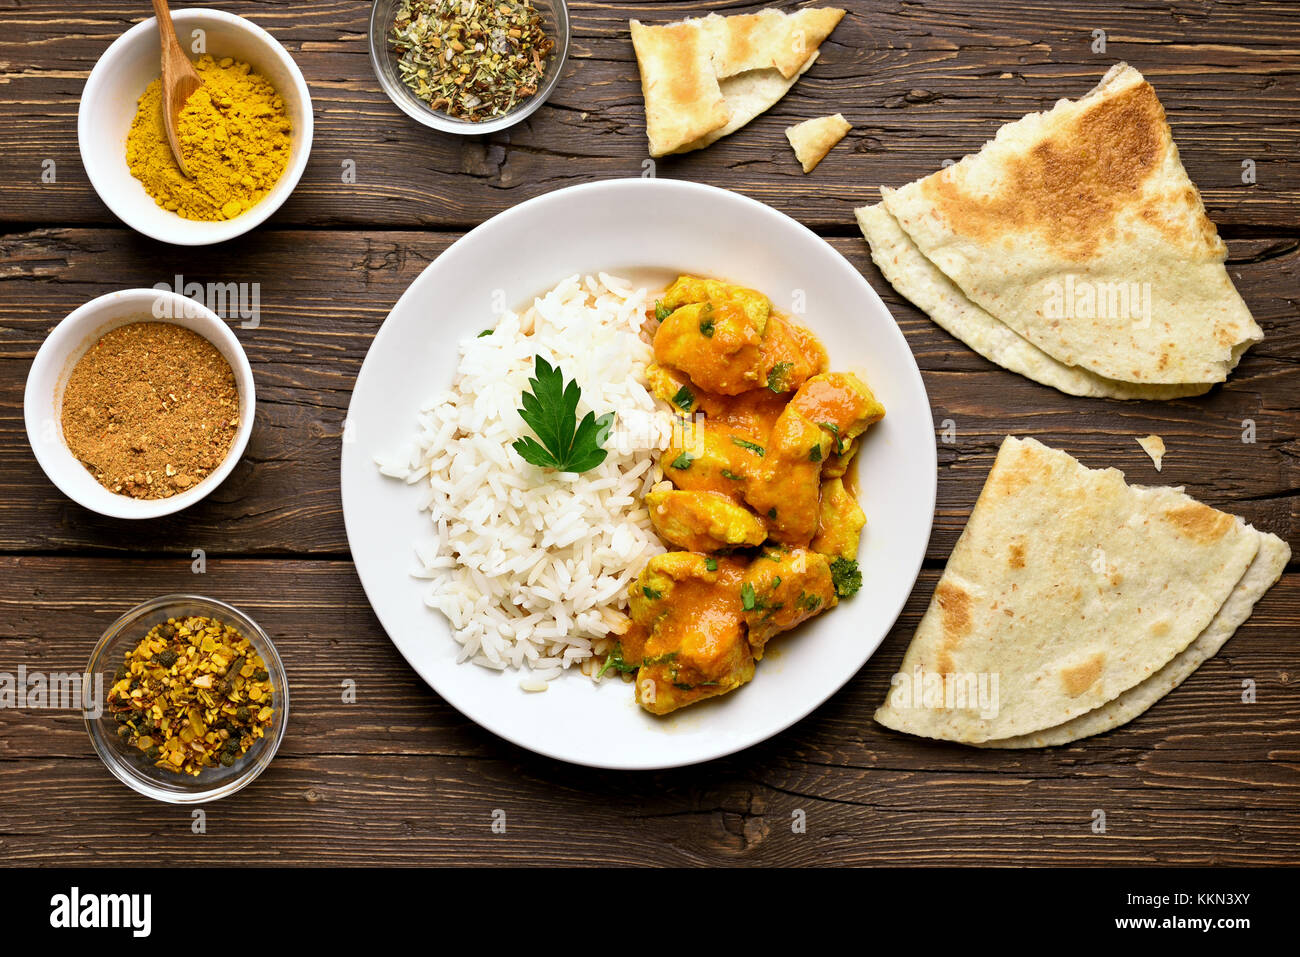 Delicious chicken curry with rice on wooden background. Top view, flat lay - Stock Image